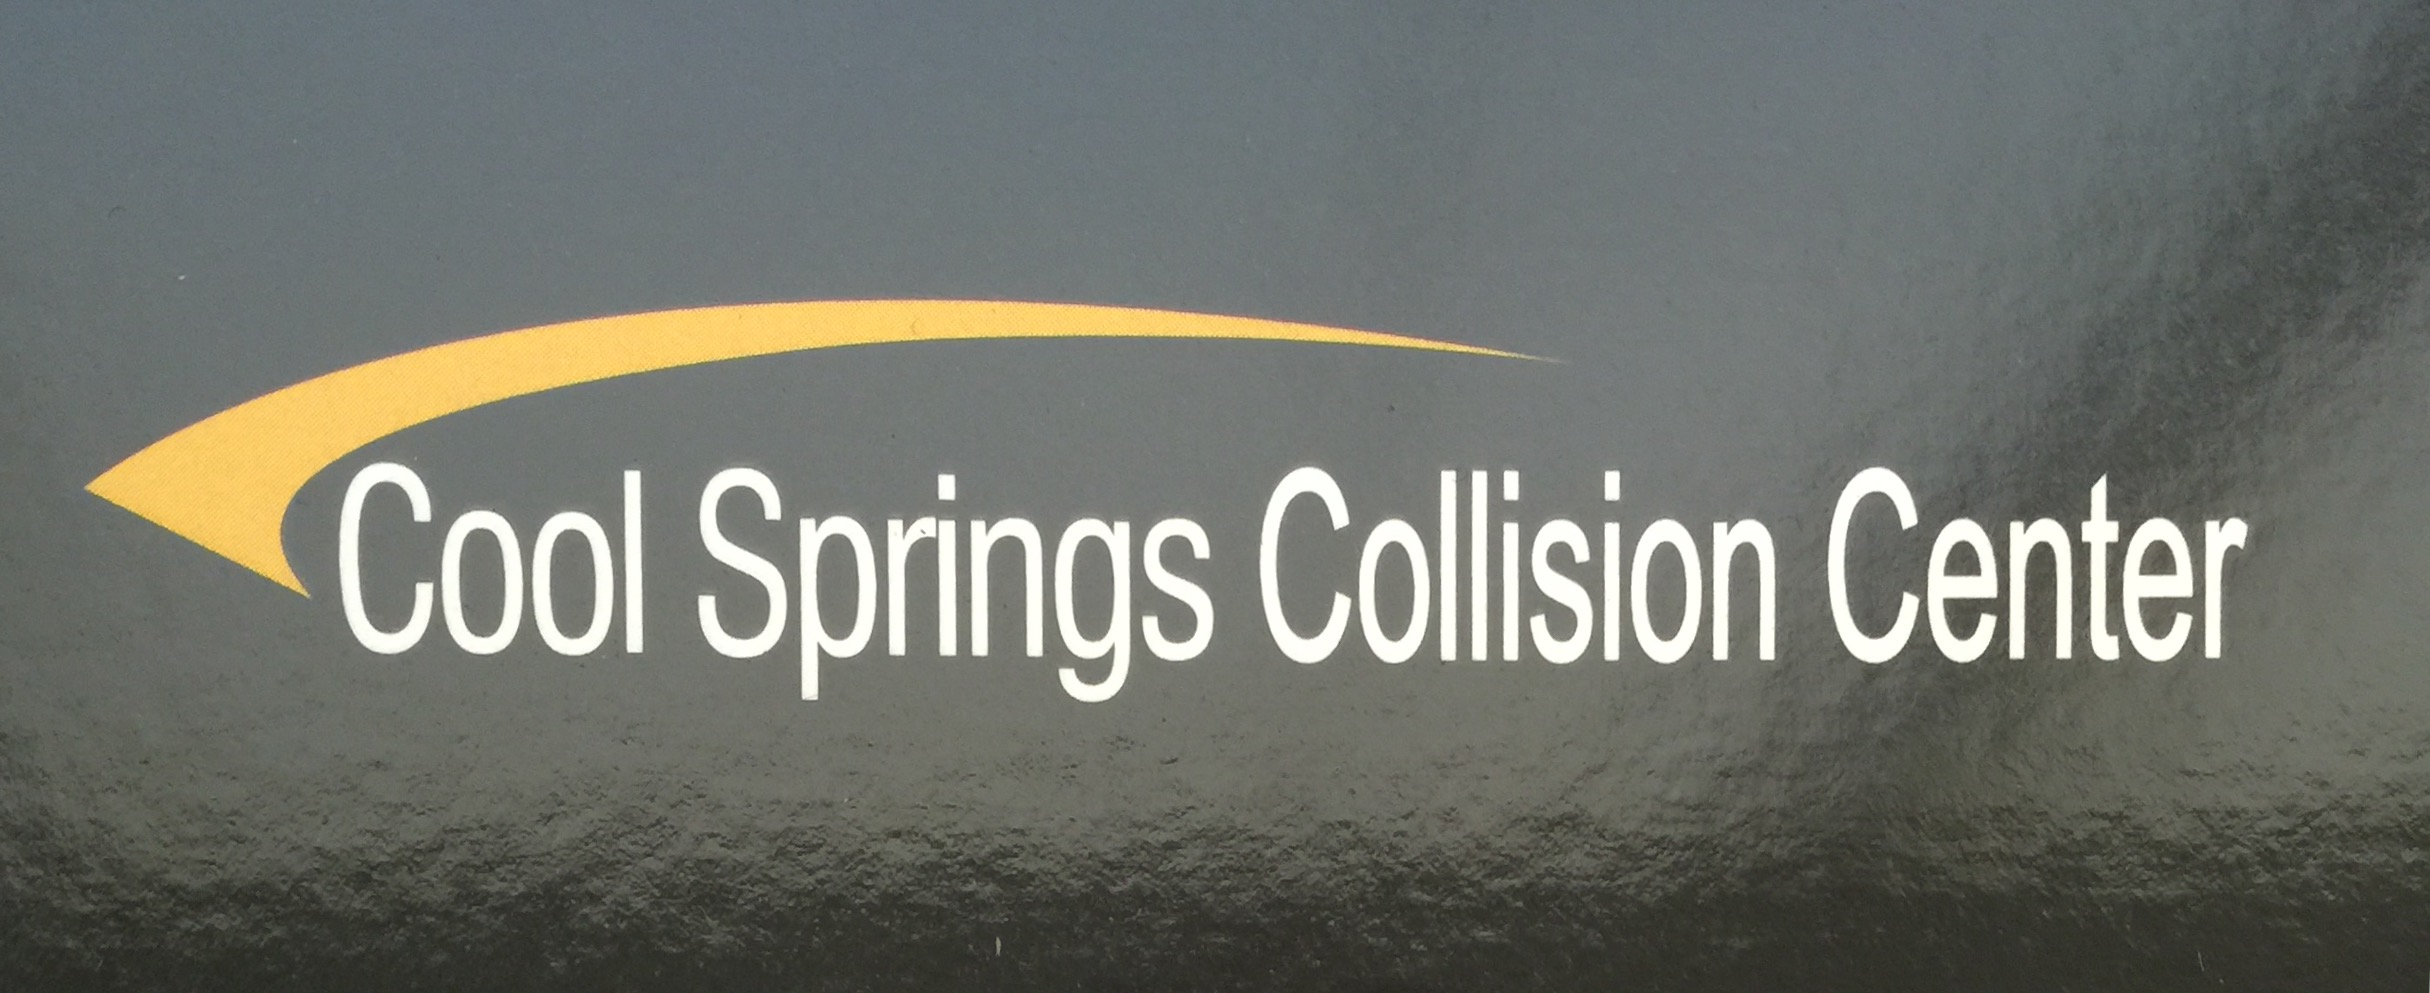 Cool Springs Collision Center Phone 615 599 6630